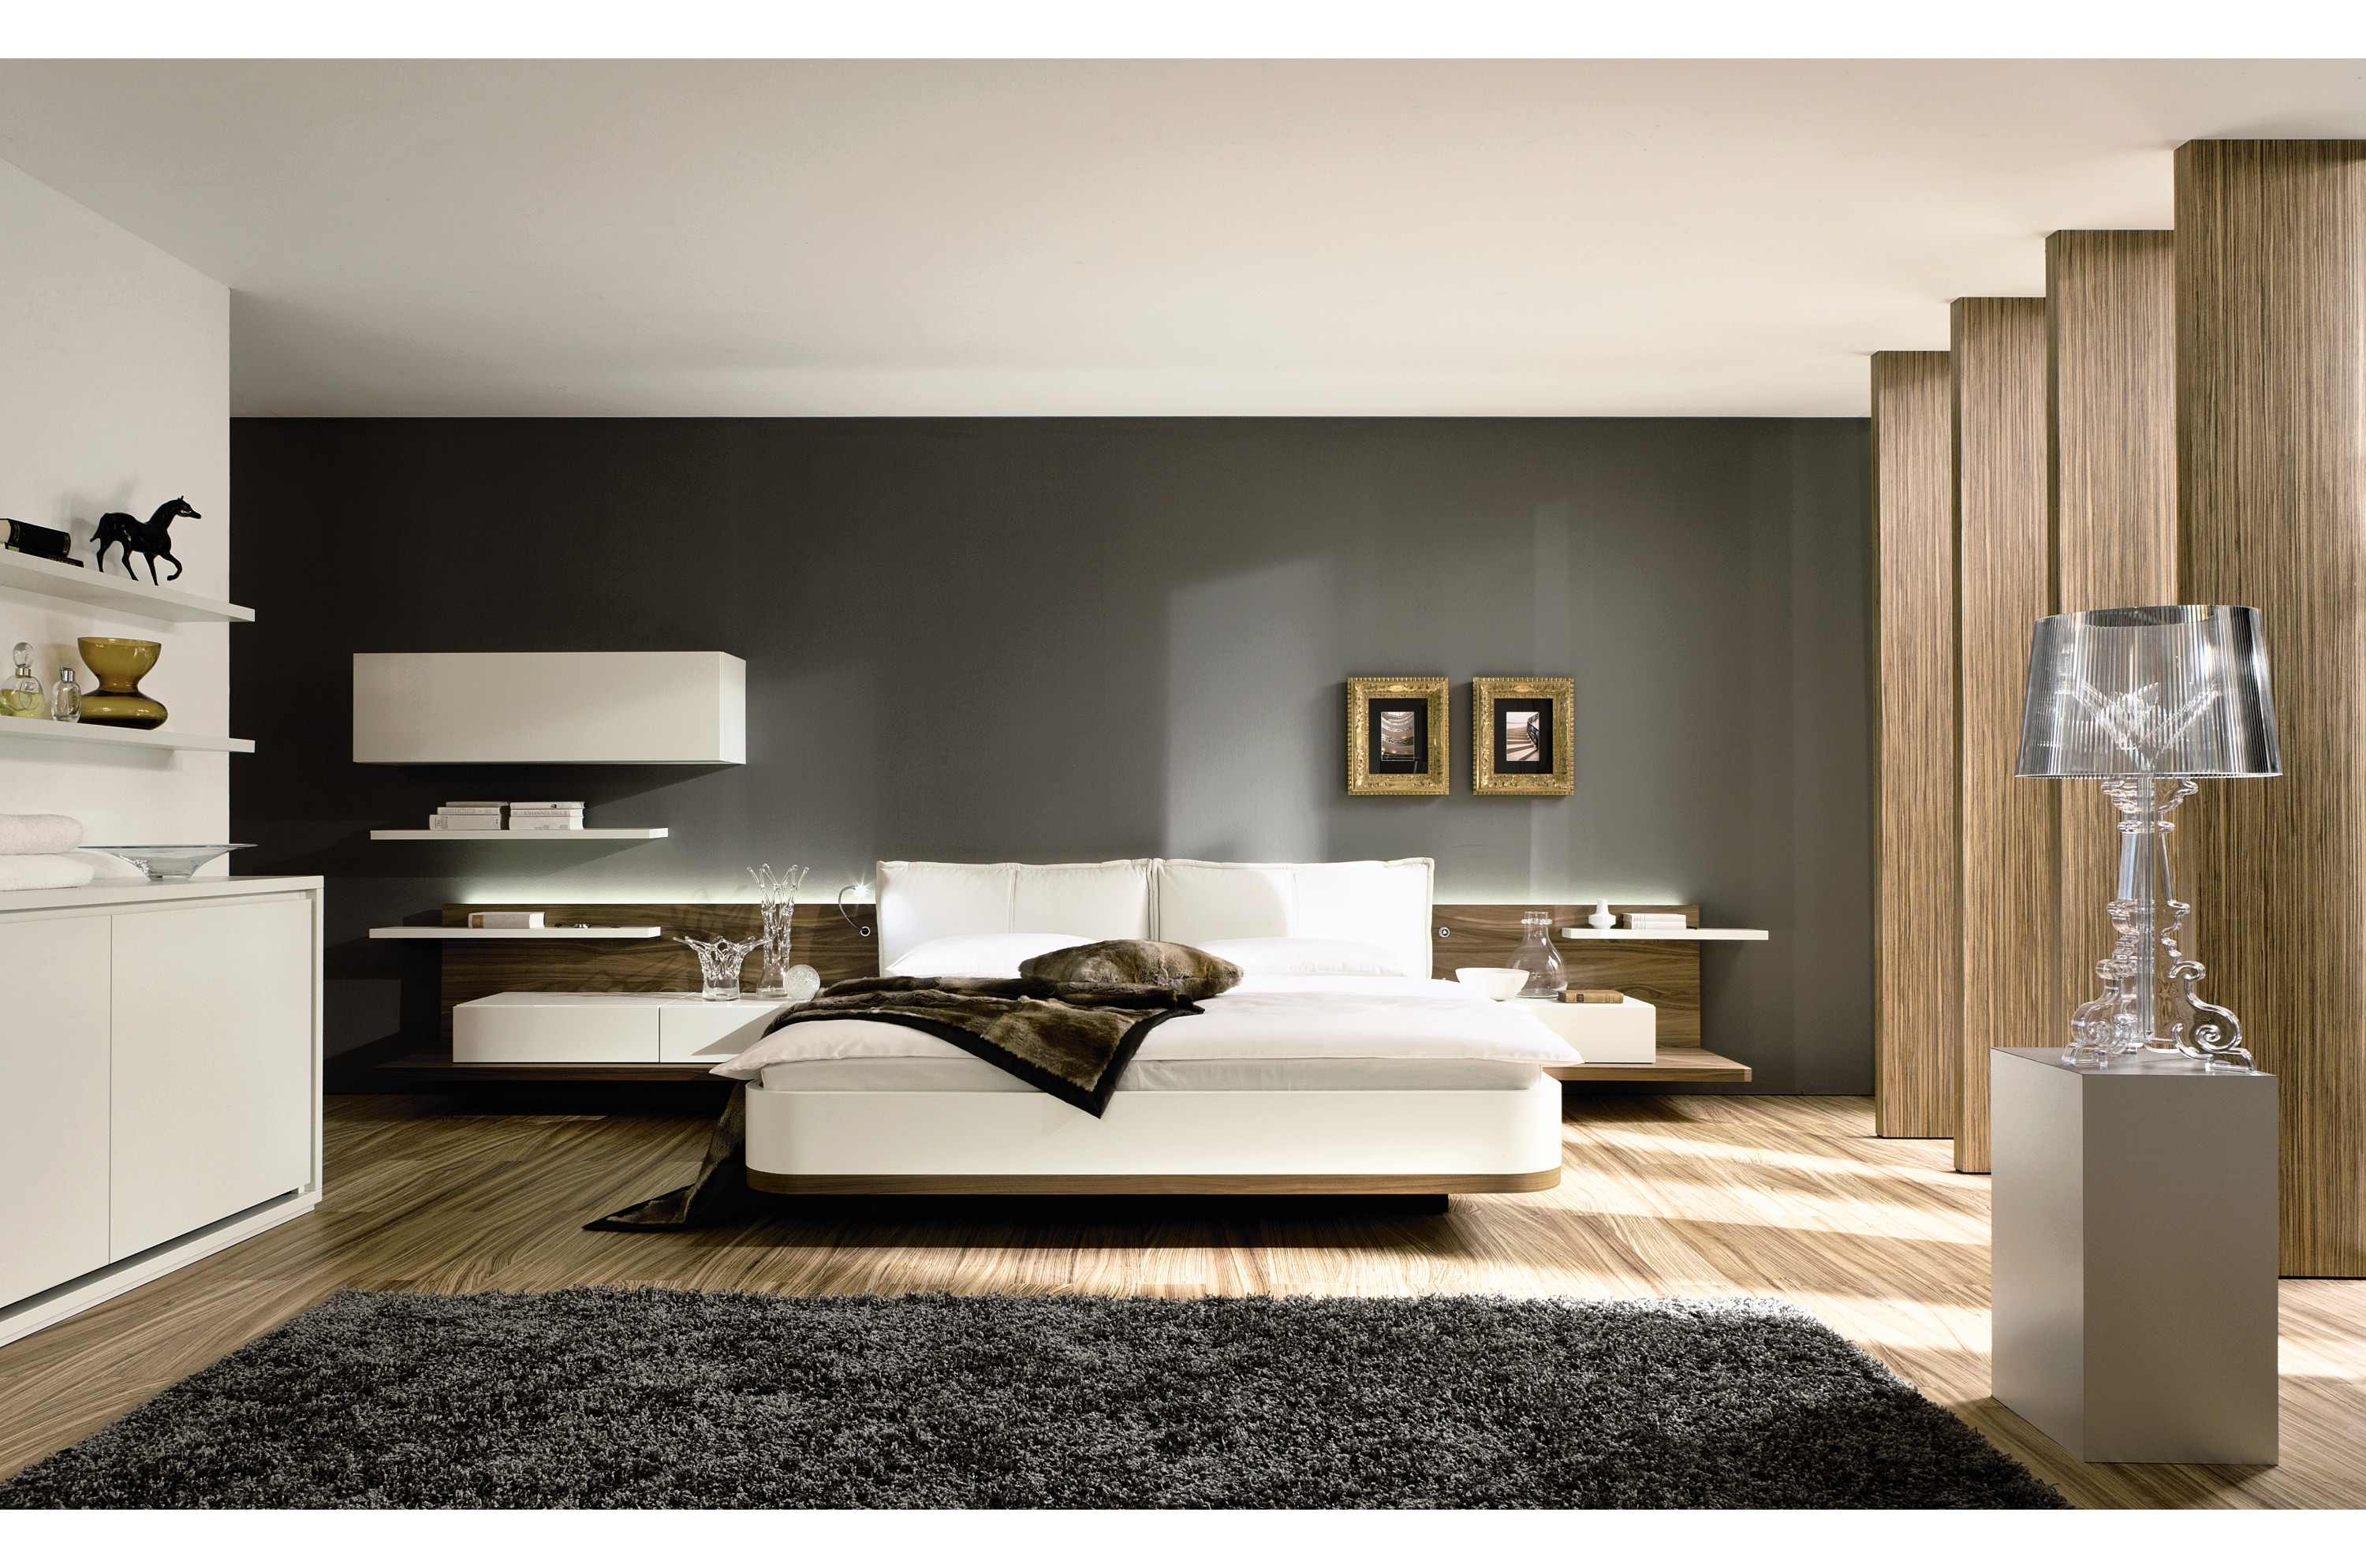 Modern bedroom innovation bedroom ideas interior design and many kodok demo for Contemporary master bedroom designs